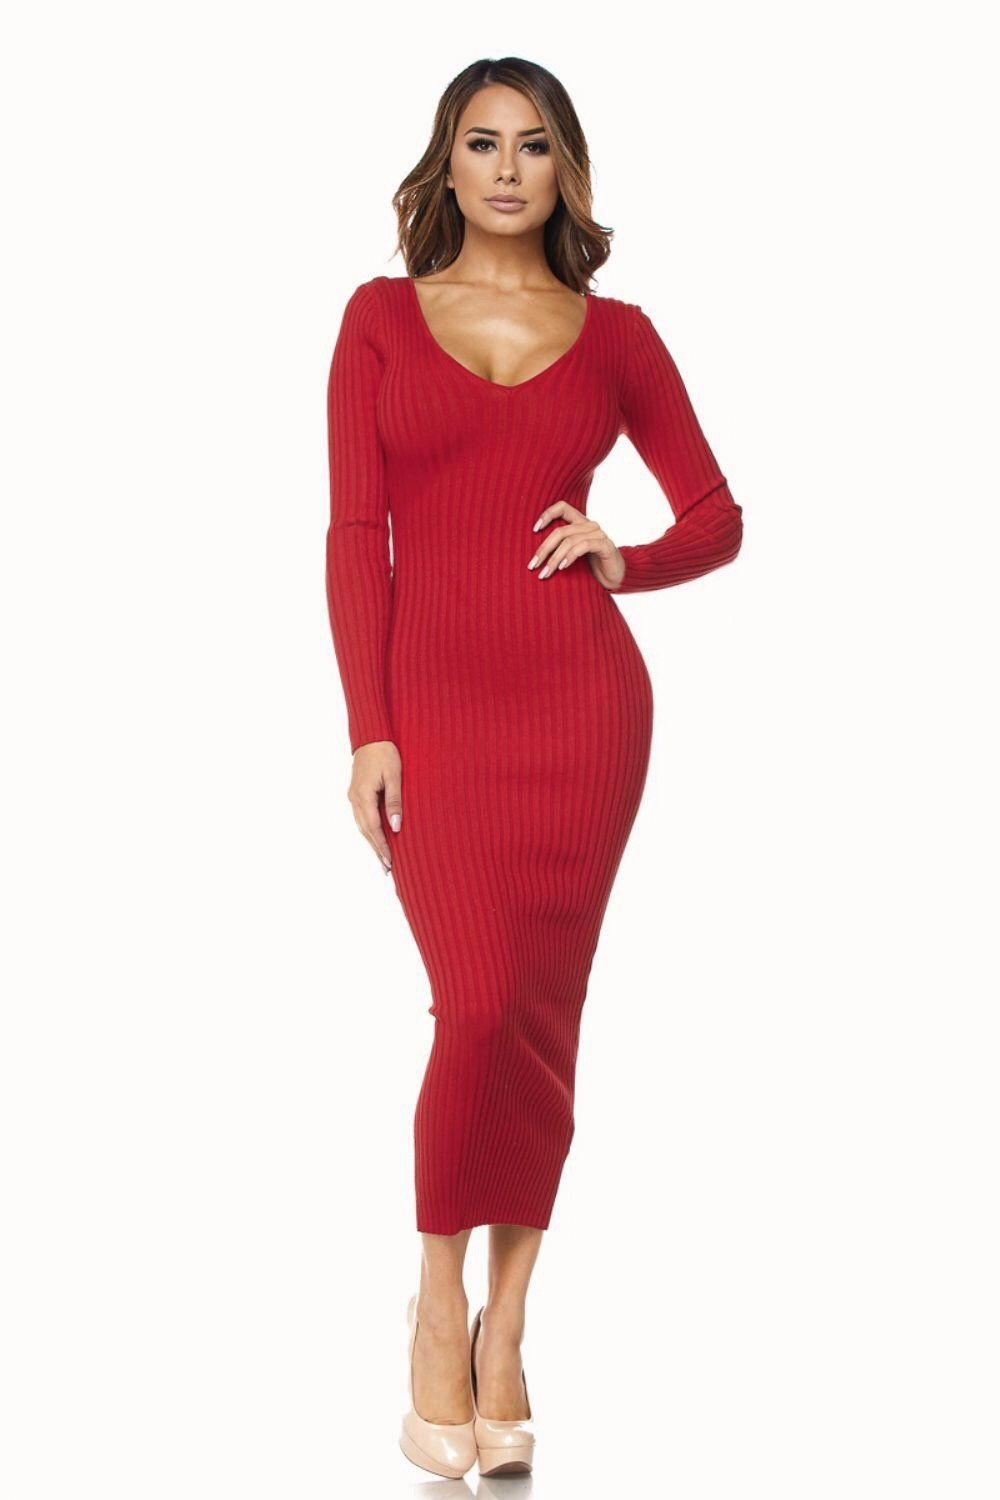 Kenya Red Ribbed Sweater Midi Dress - Dress - Marsia bac82a4df